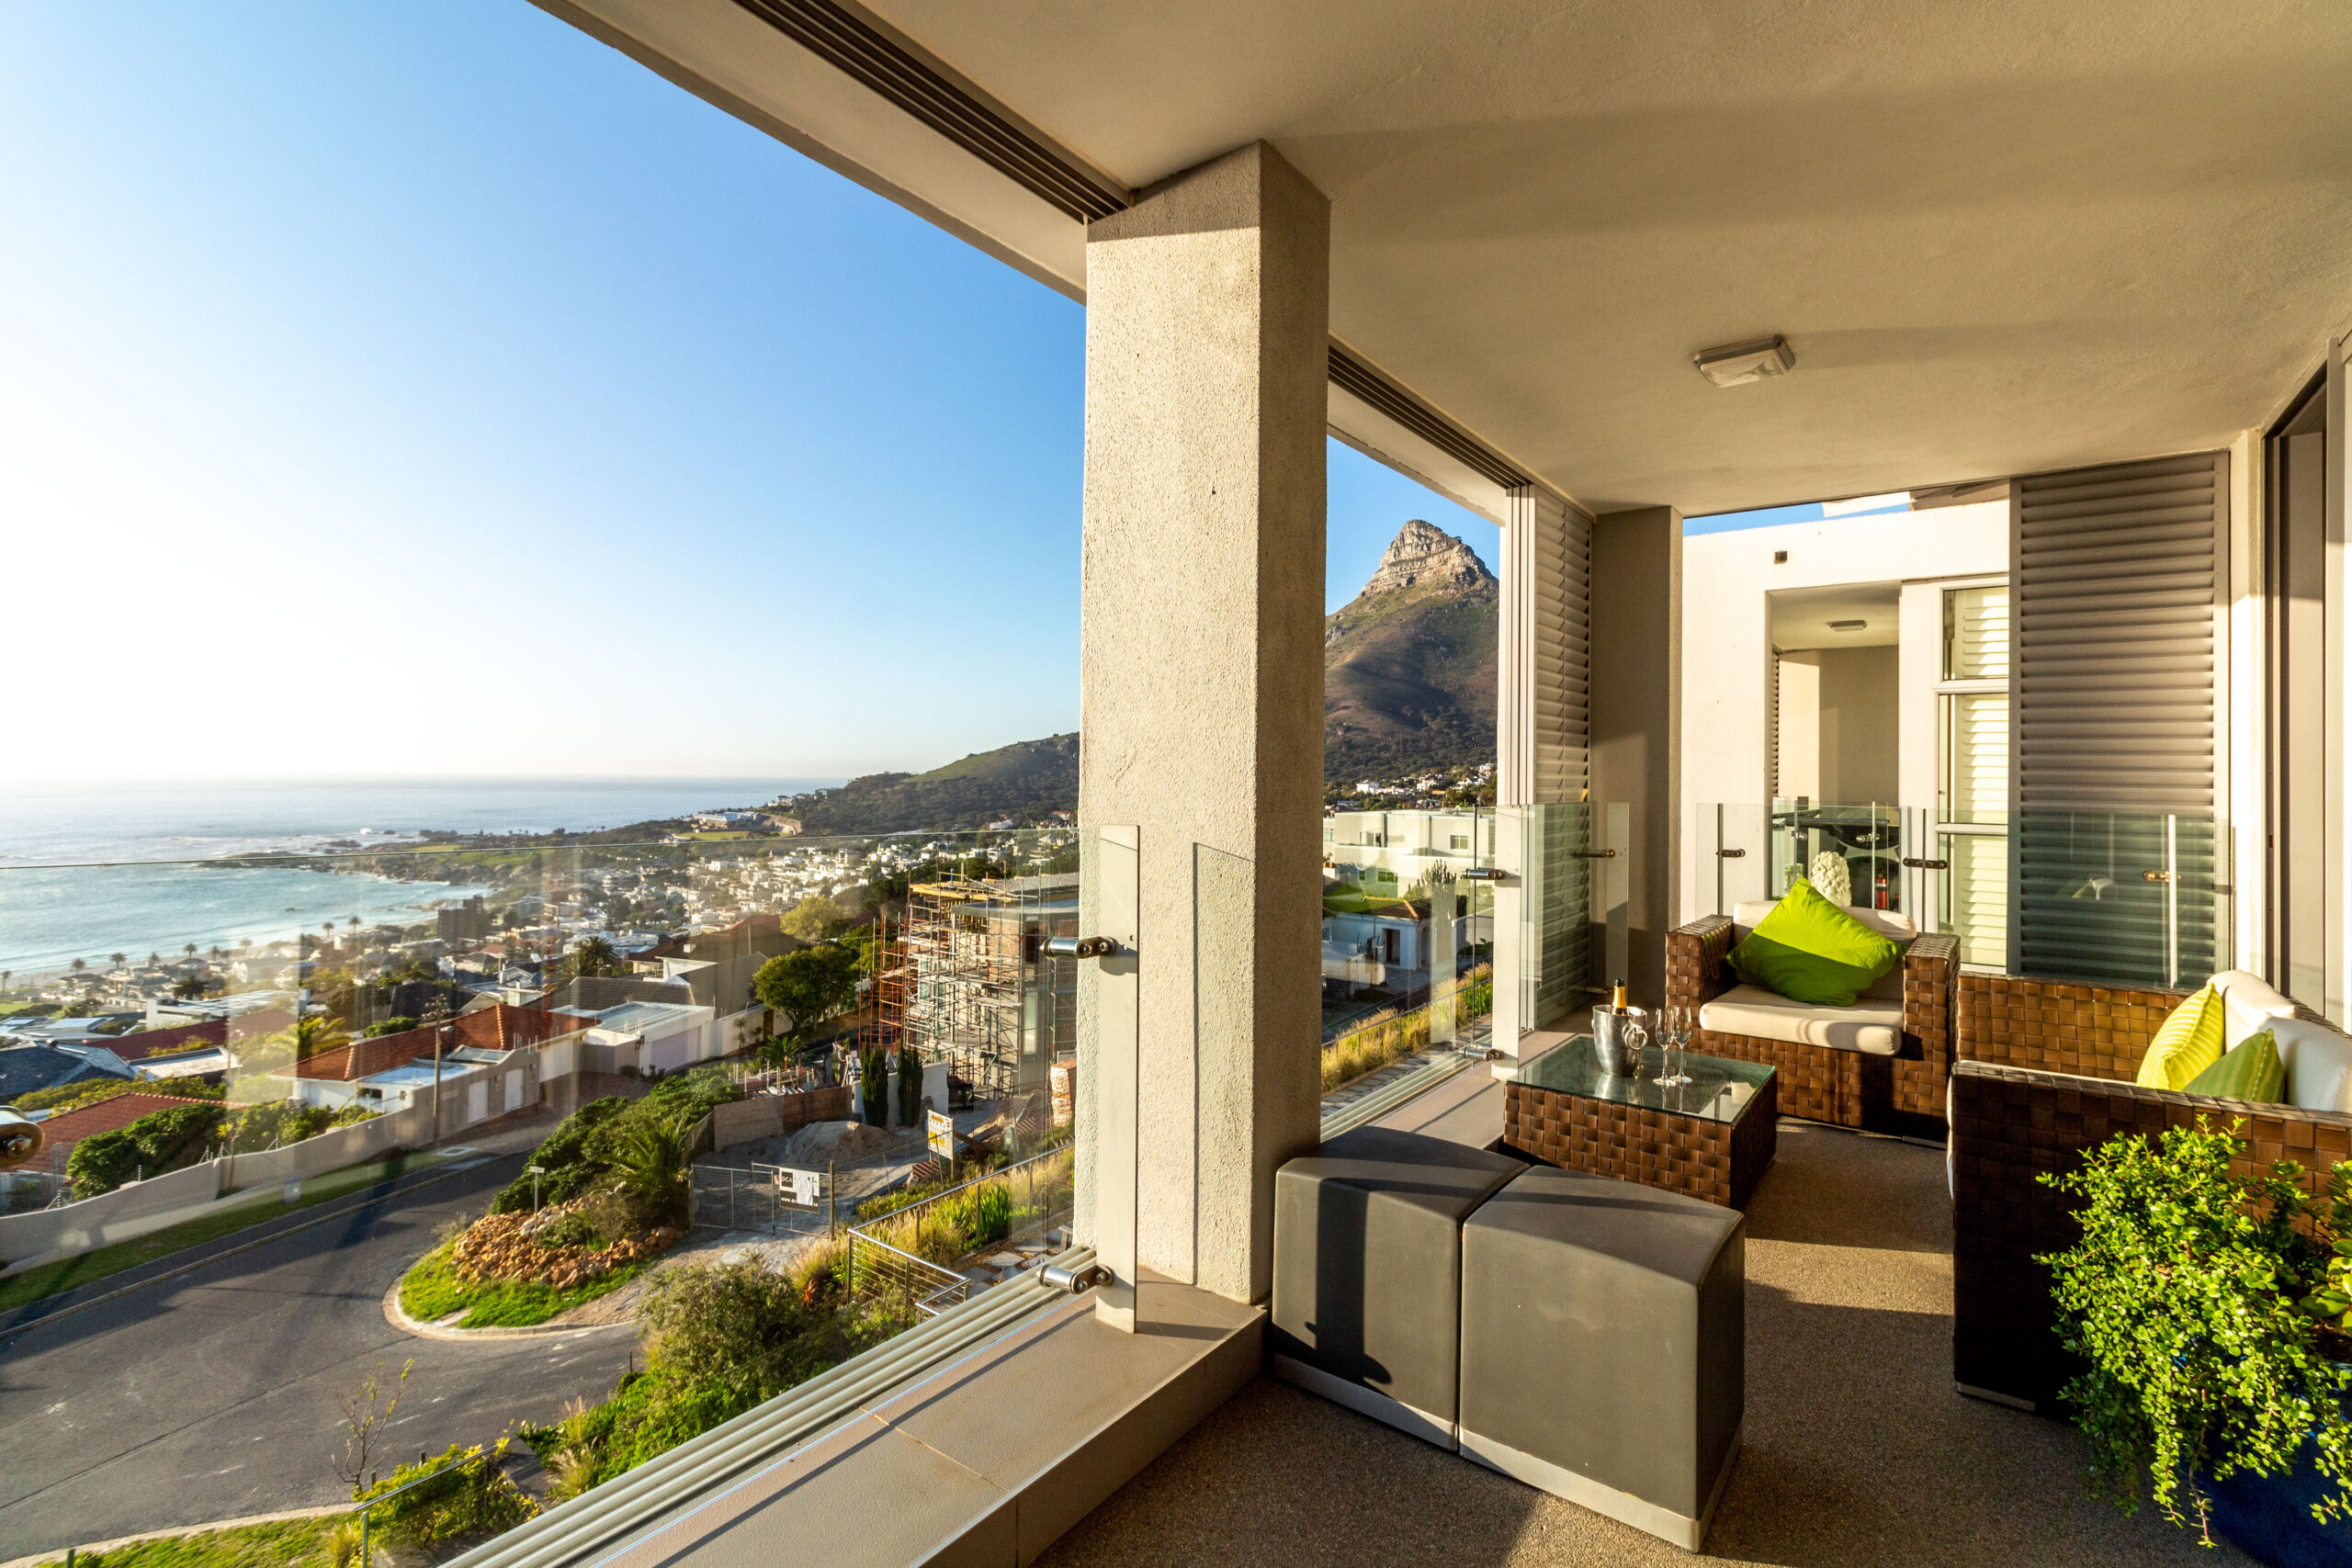 4/5 Bedroom Penthouse for Sale in Camps Bay